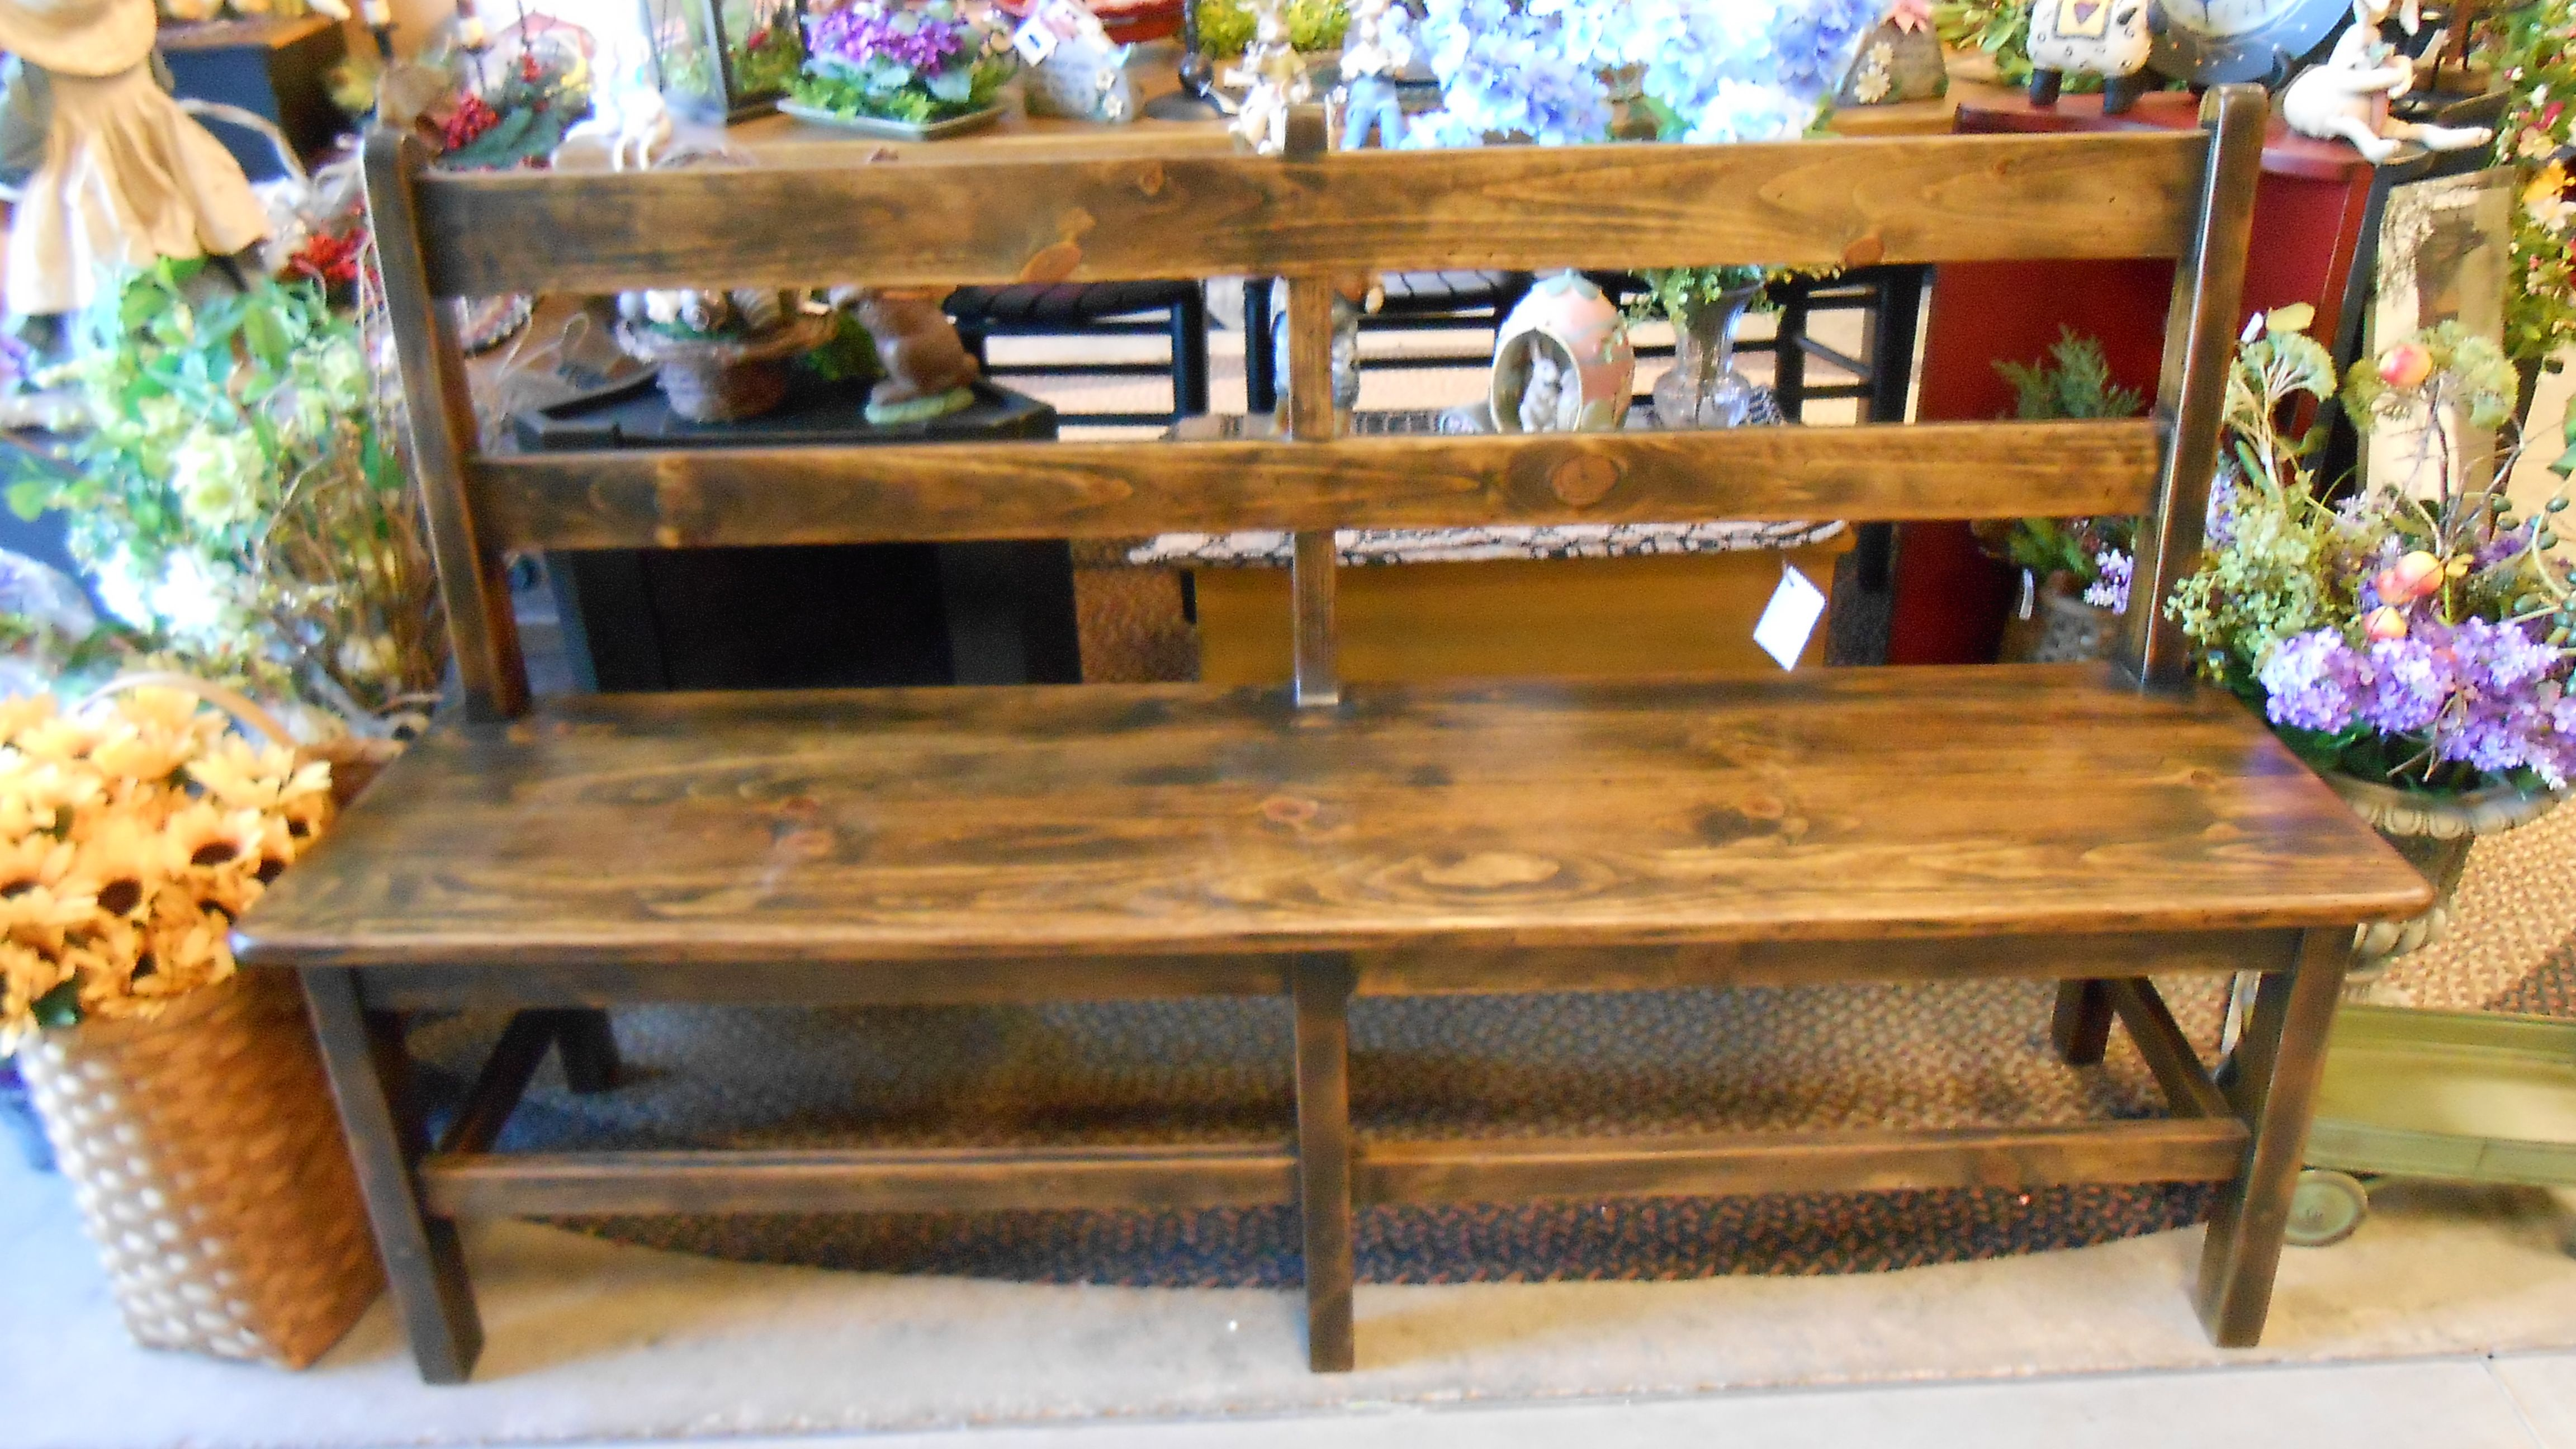 Superior Furniture And Accessories By W. Harris For The Old Mercantile In  Clarksville Tn. Like